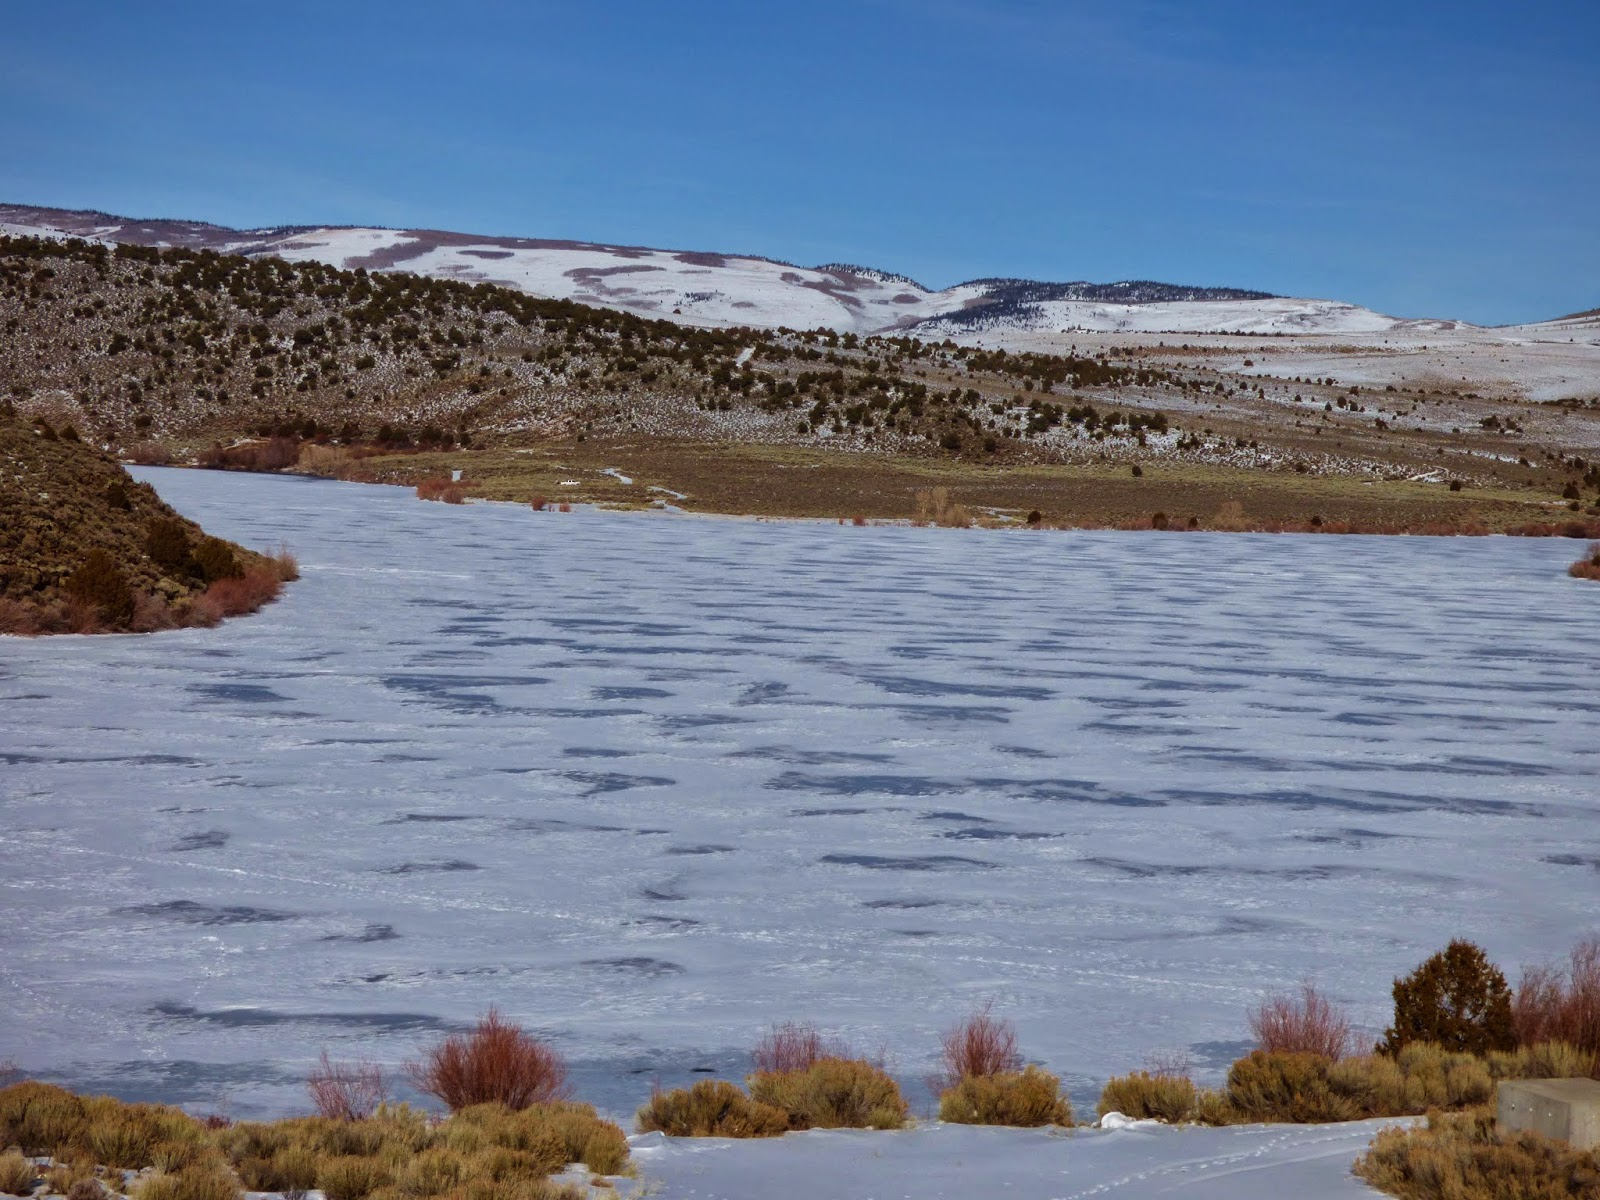 Southern utah fly fishing quiet fly fisher guide service for Utah ice fishing report